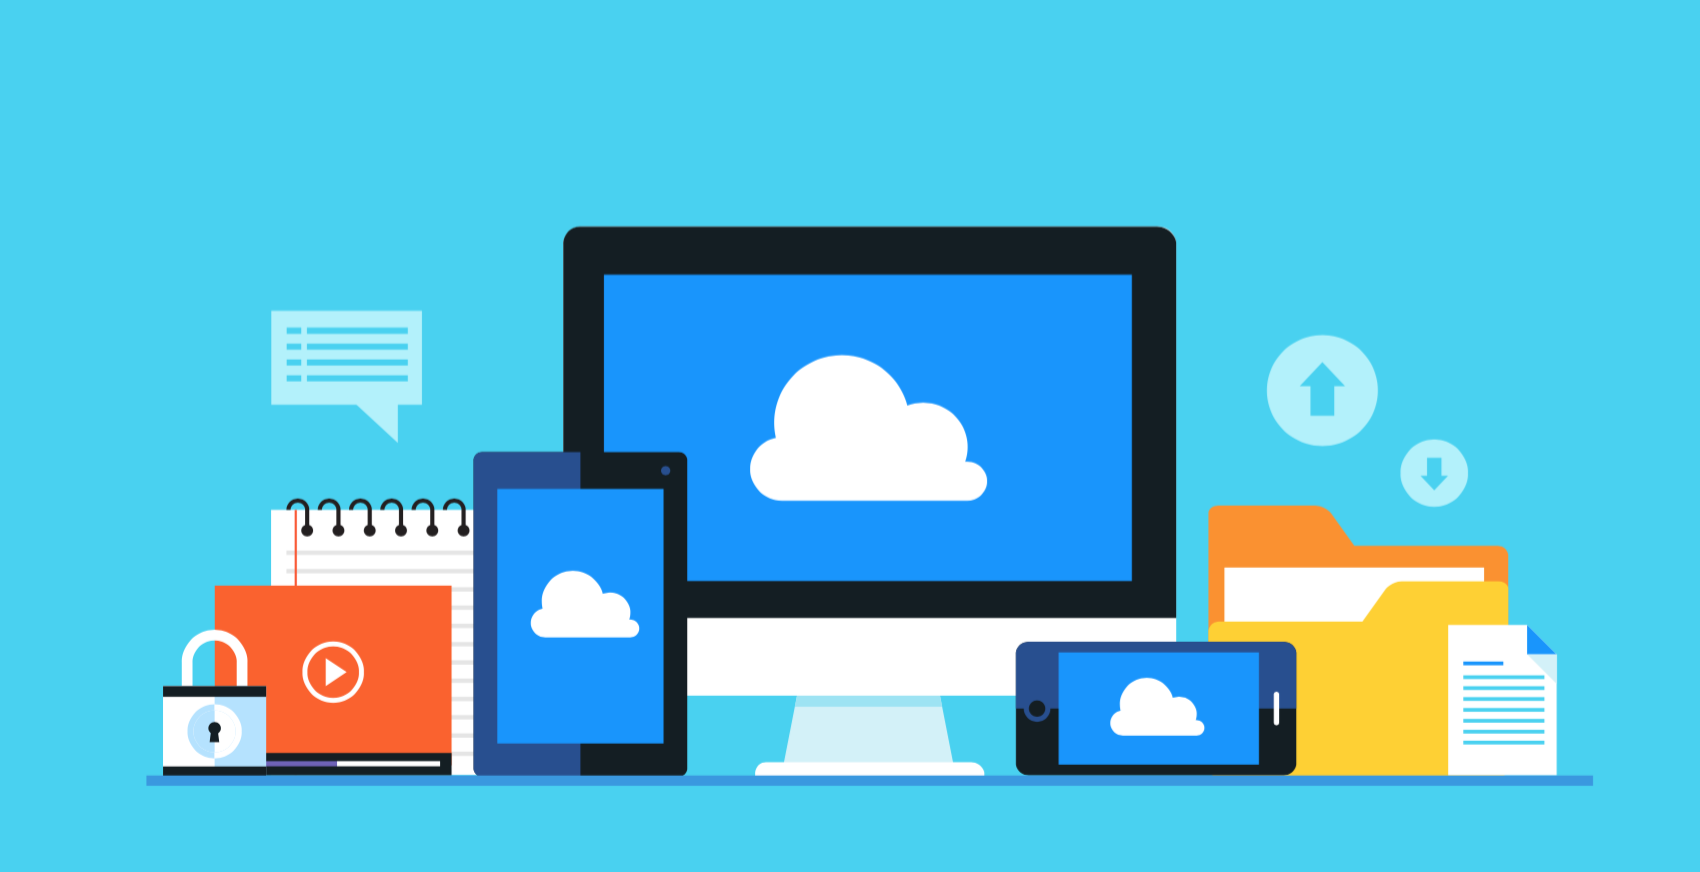 15 Best Free Cloud Storage Systems To Save Your Projects